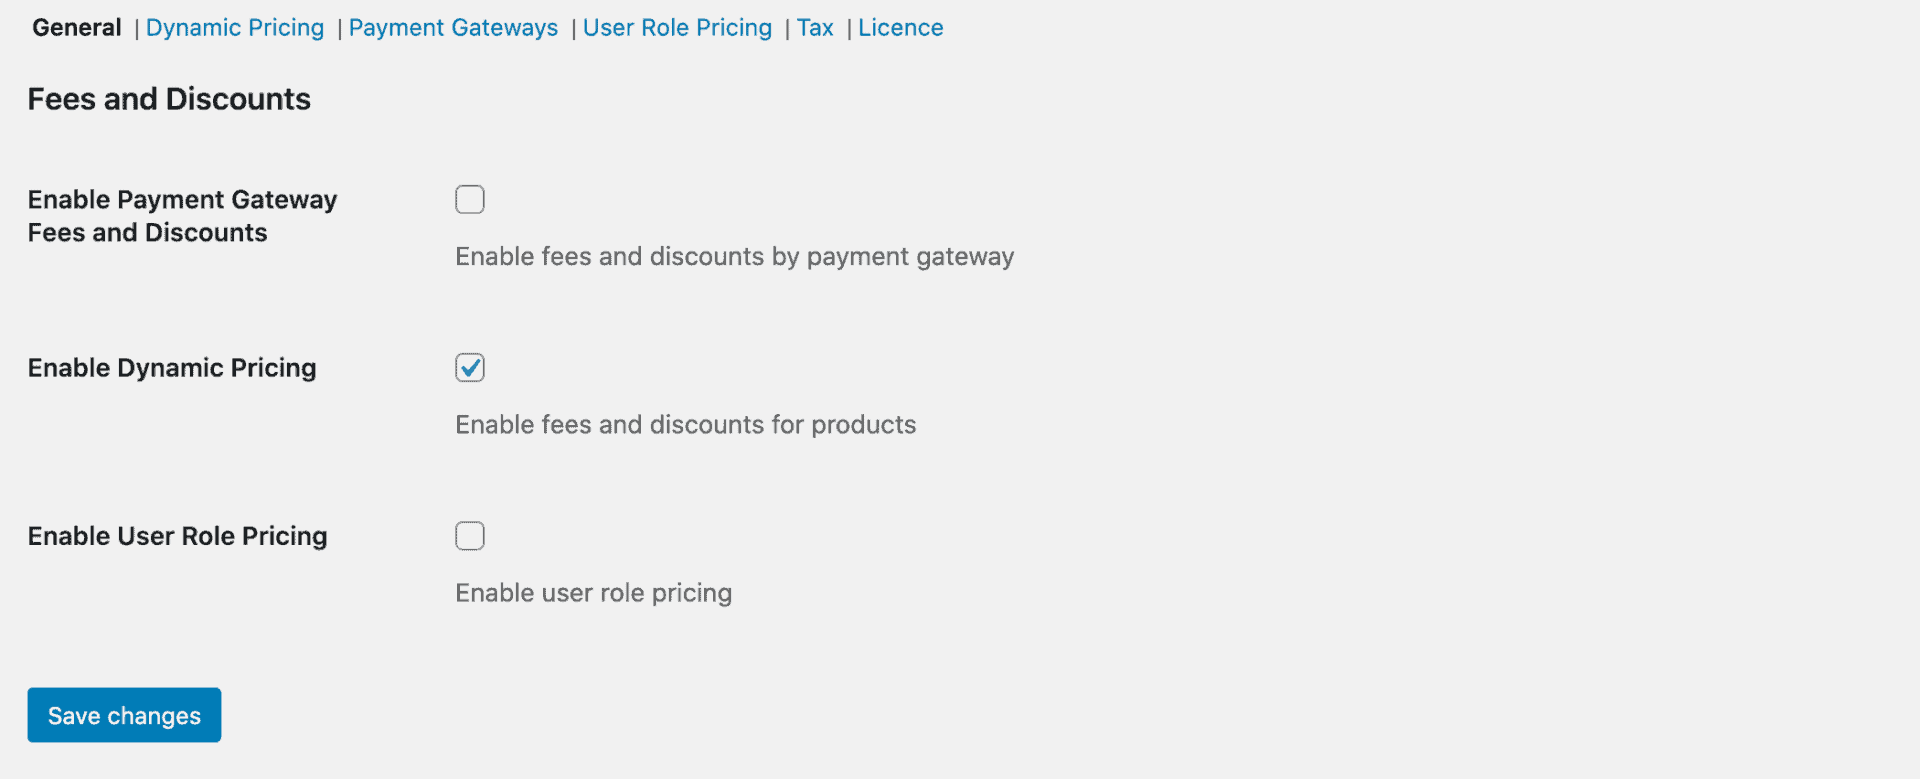 Enable dynamic pricing